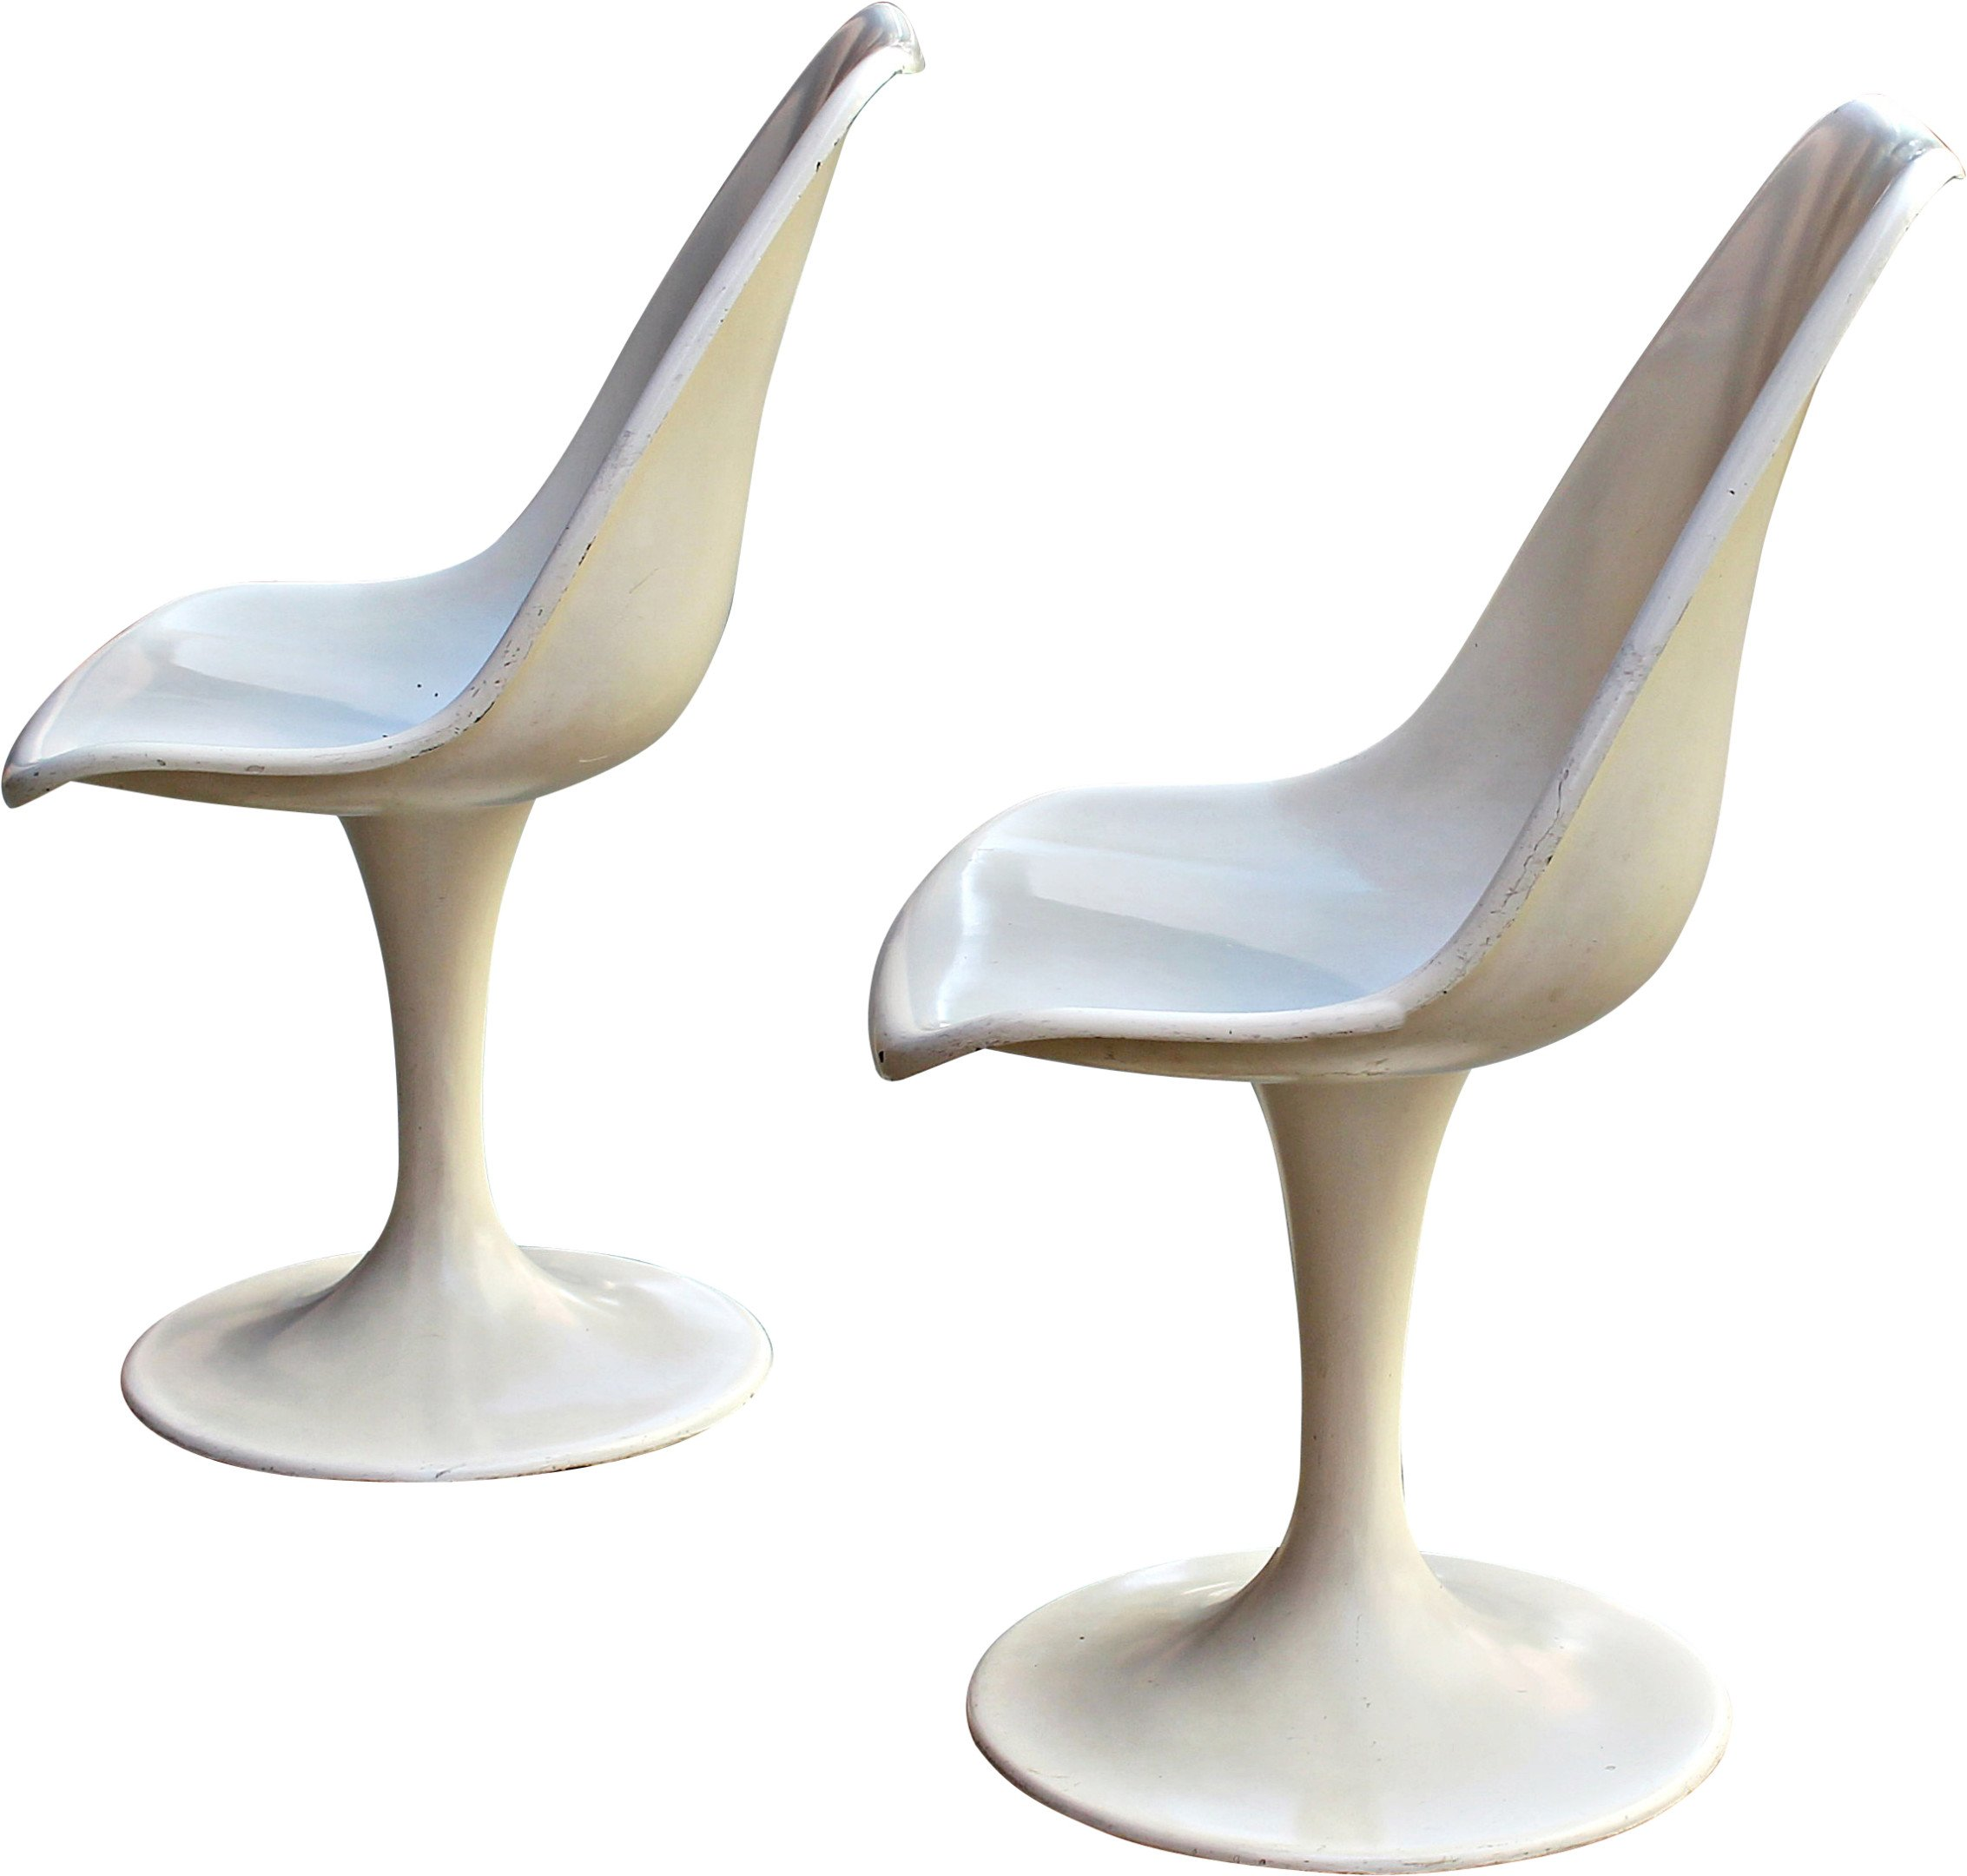 Pair of Chairs, 1960s